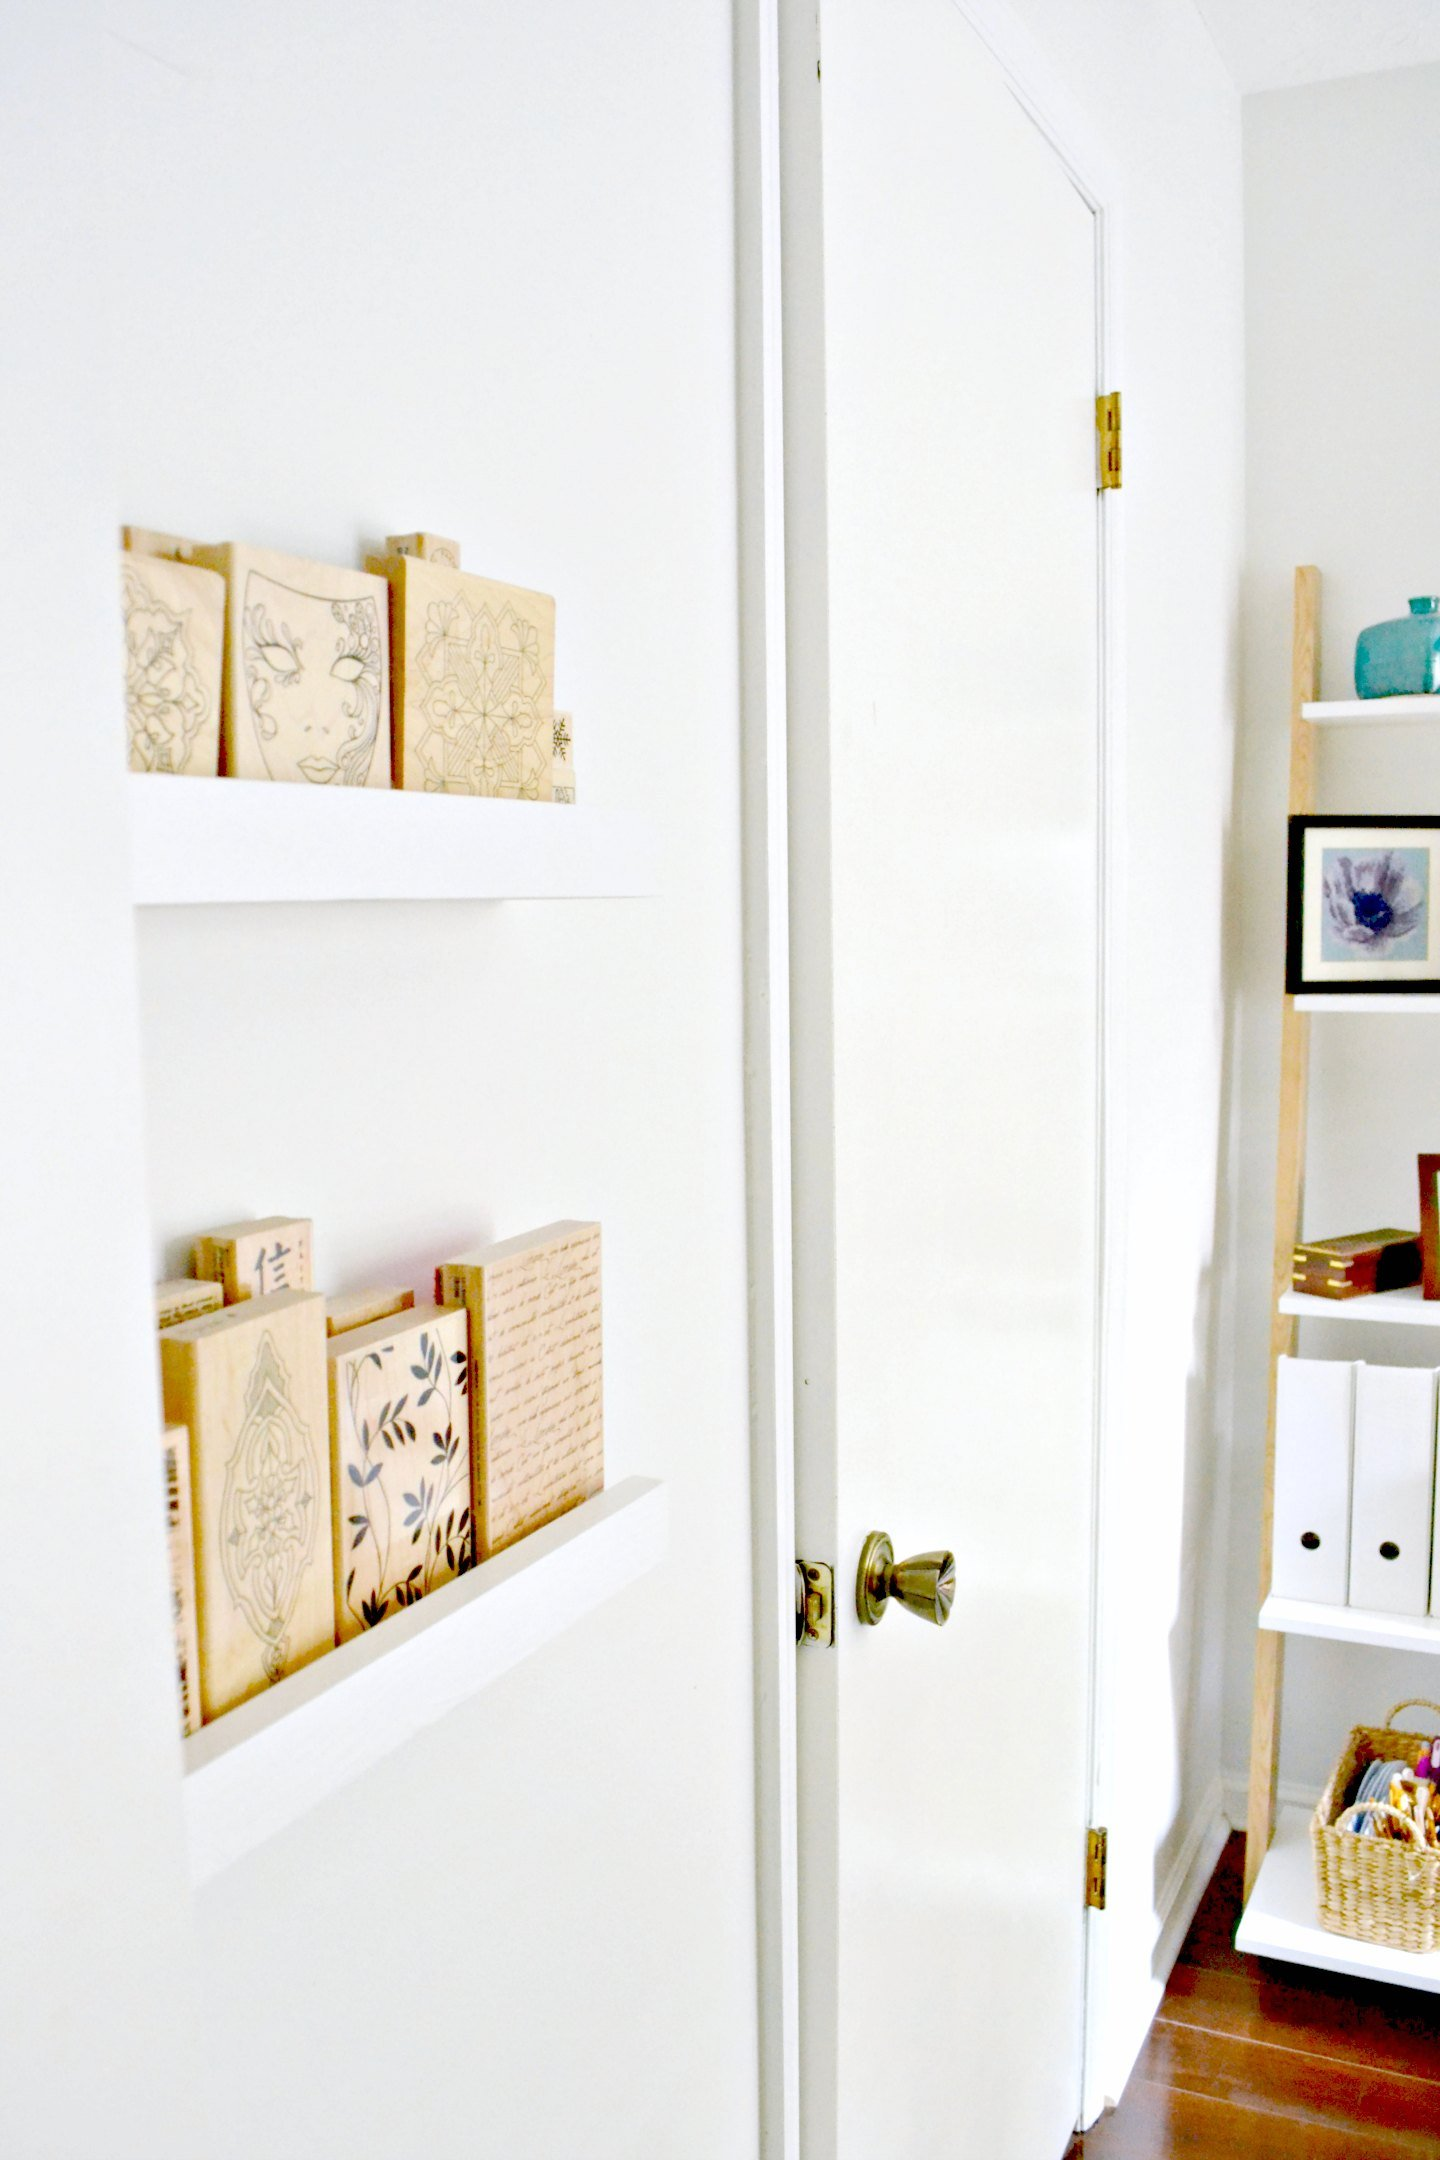 DIY Storage Ledges for Narrow Spaces